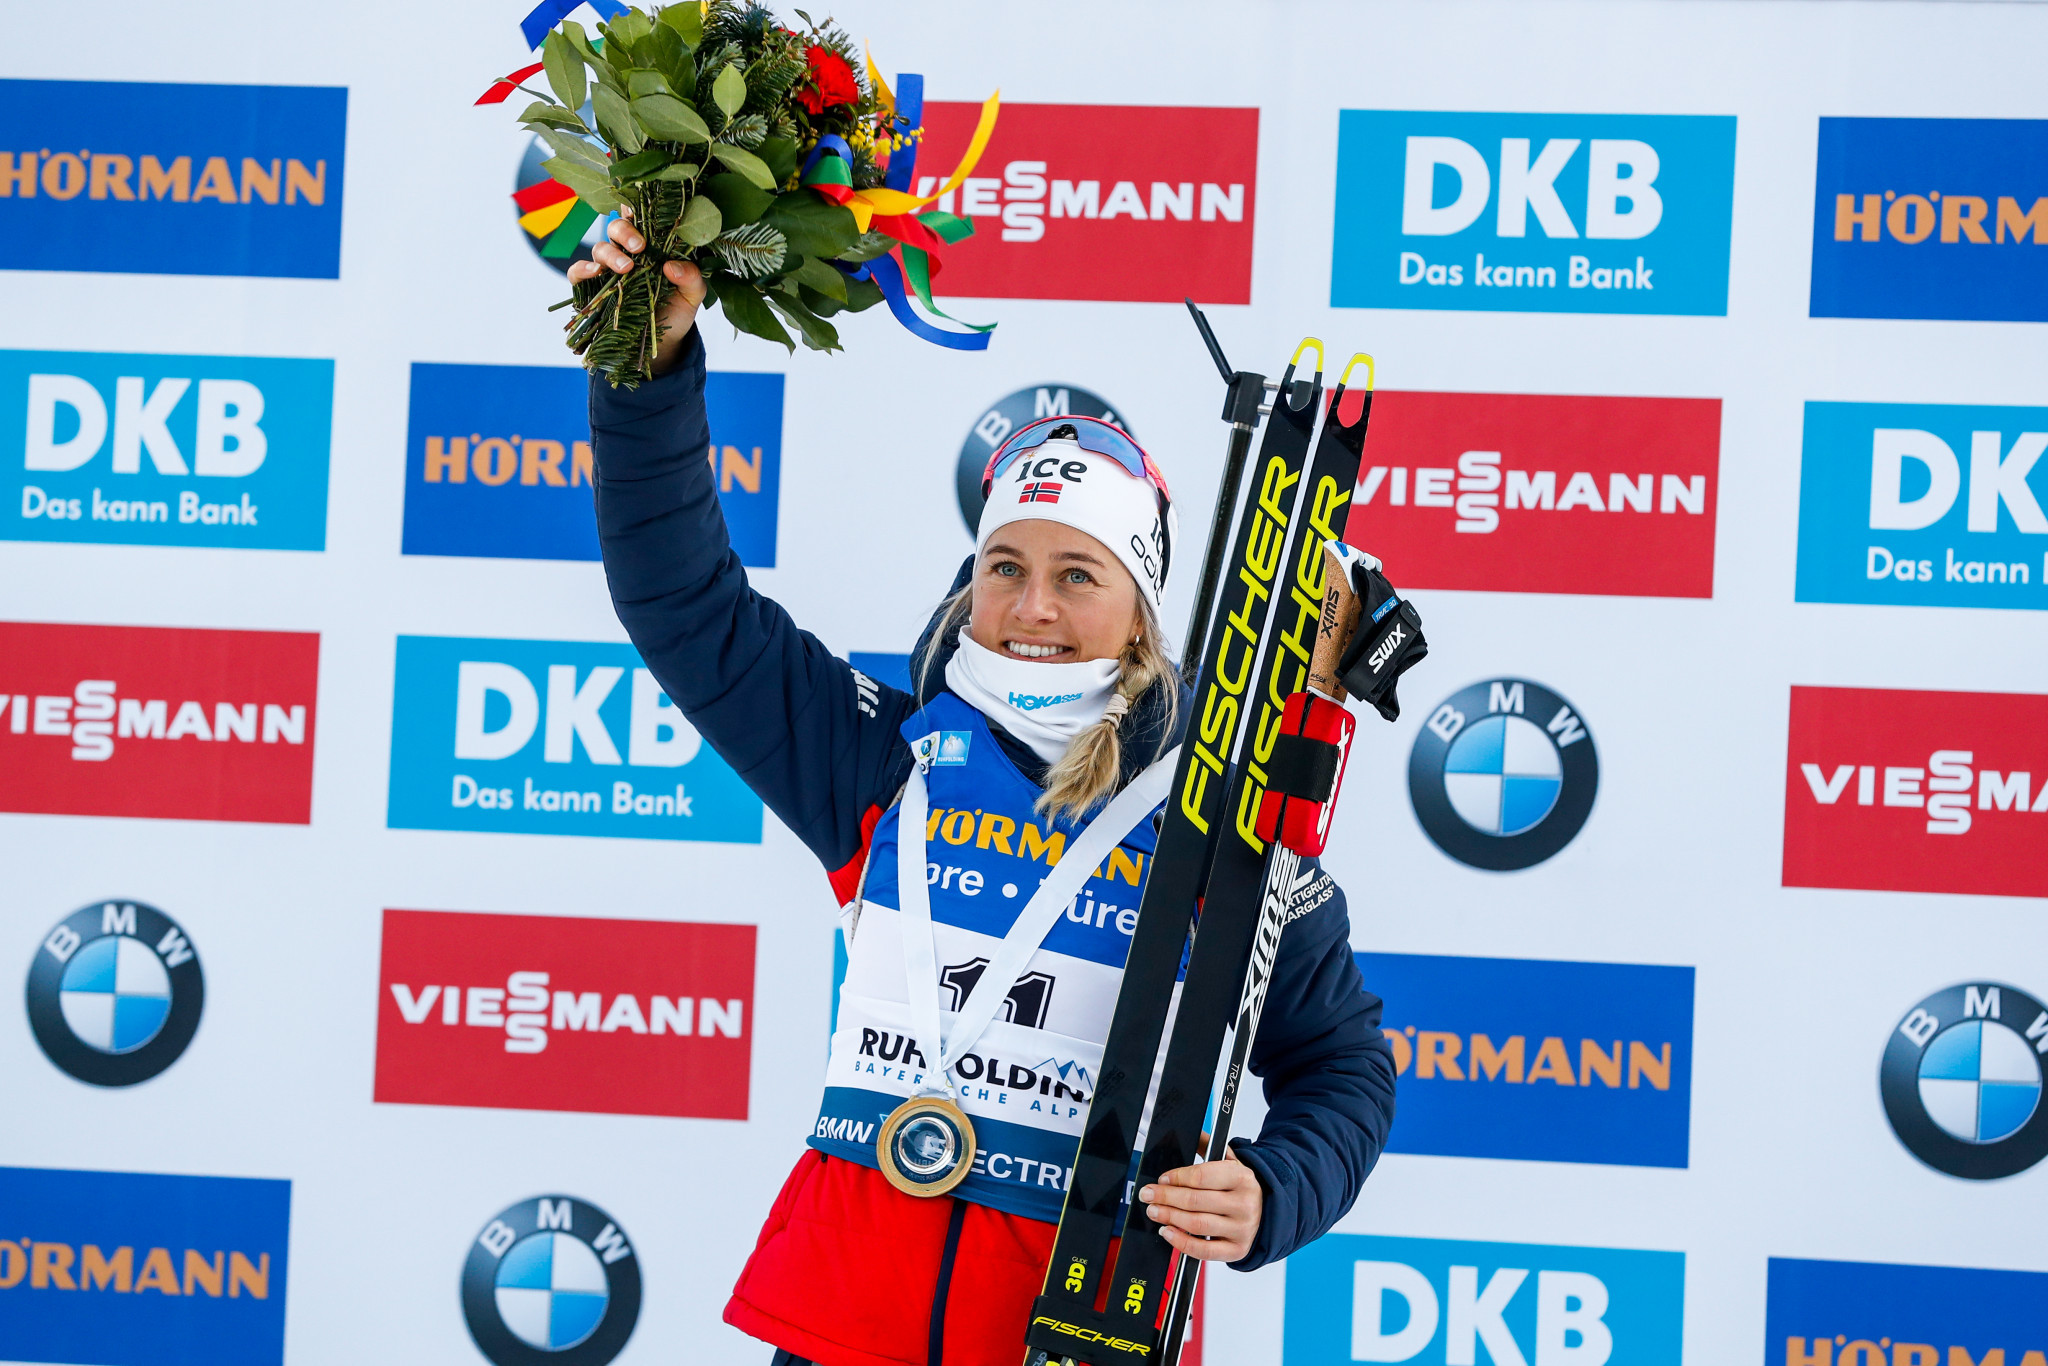 Eckhoff takes IBU World Cup lead in Ruhpolding